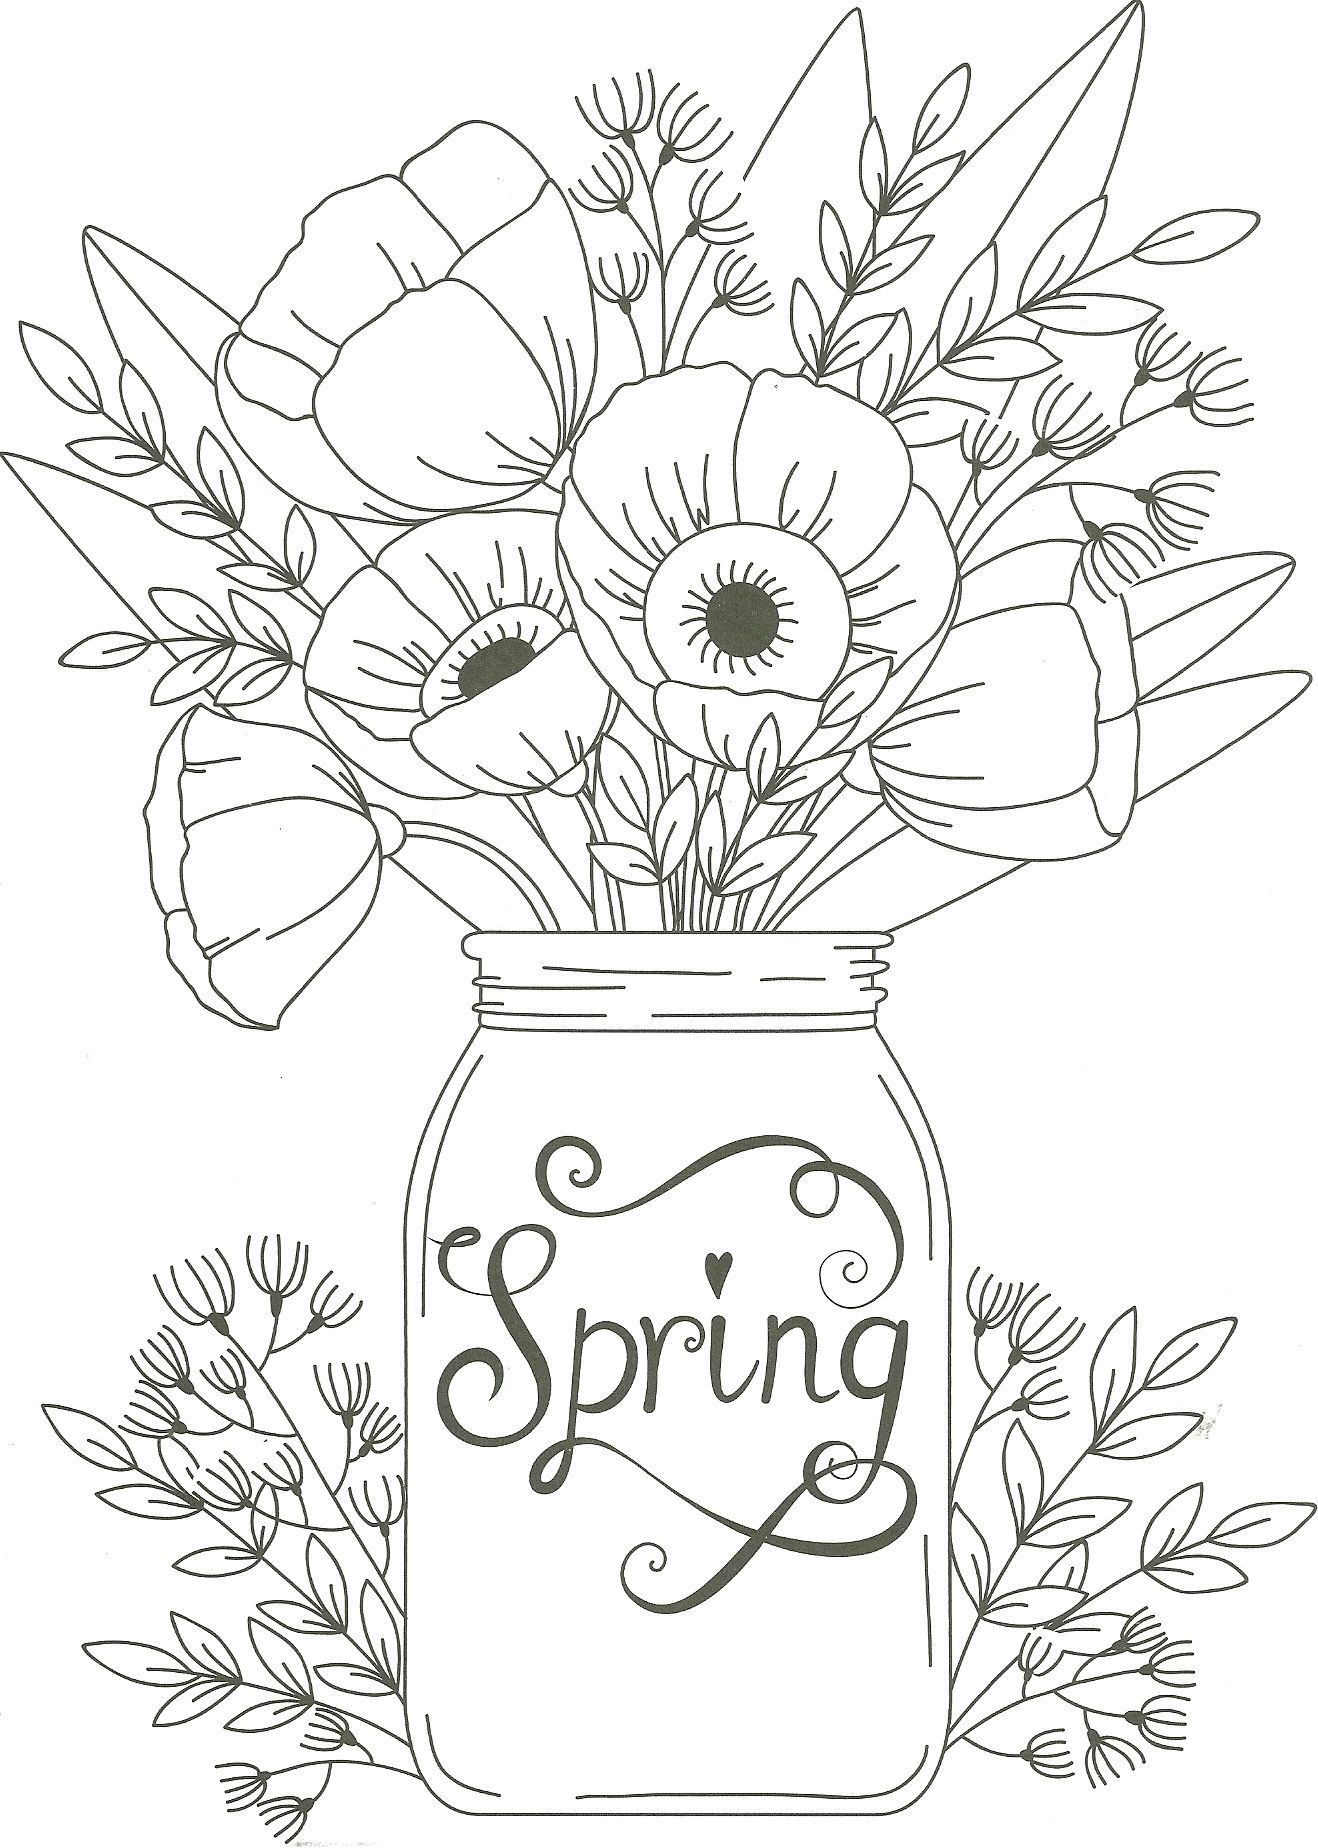 spring mason jar floral coloring page (With images ... | spring flower coloring pages